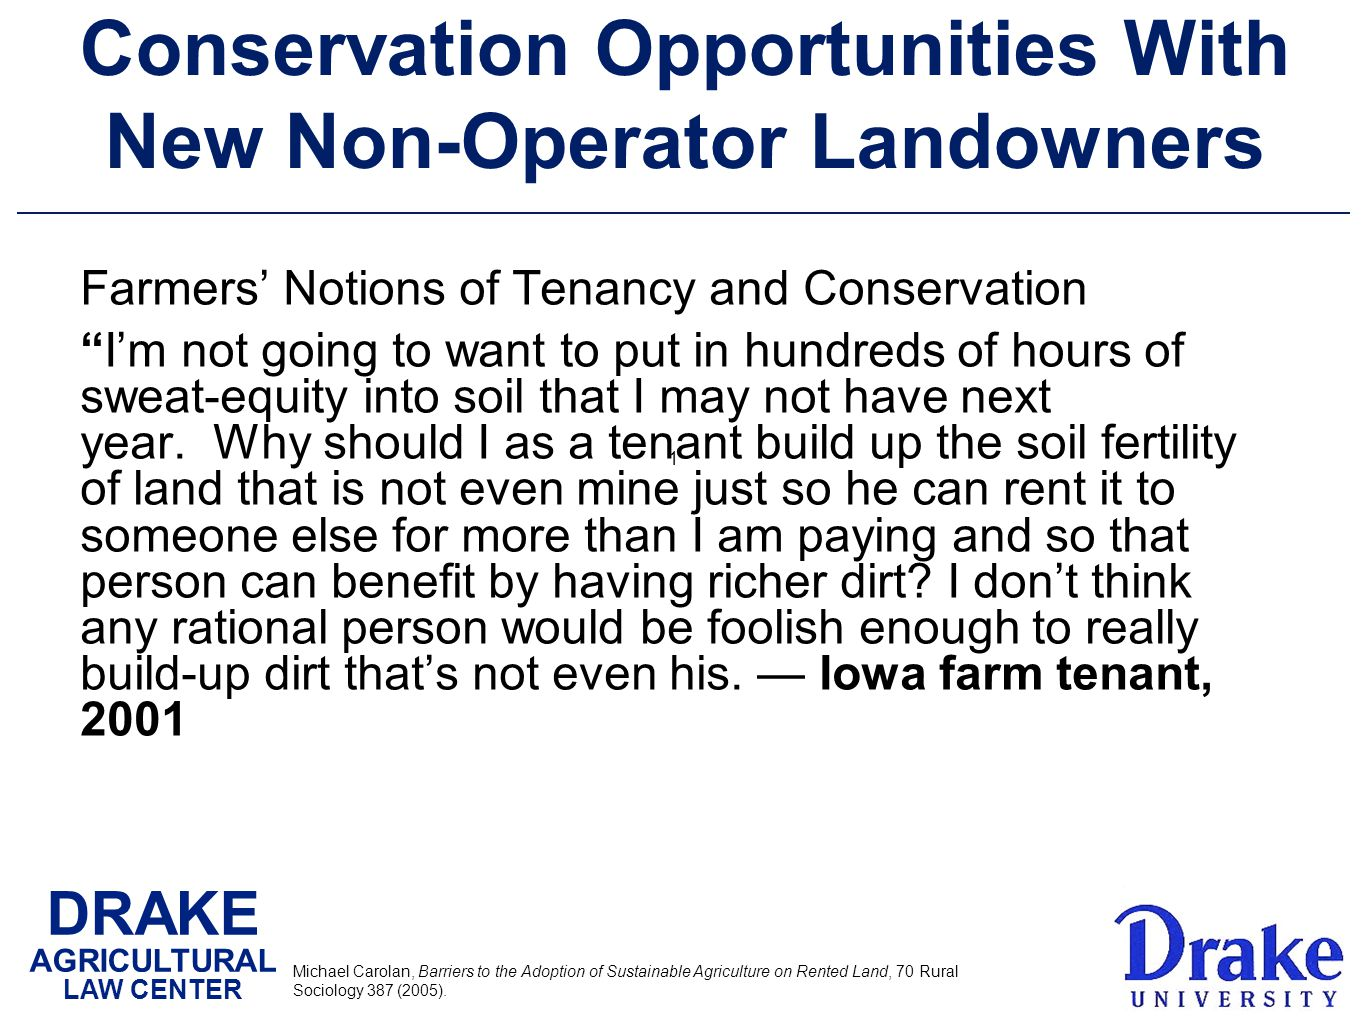 DRAKE AGRICULTURAL LAW CENTER Conservation Opportunities With New Non-Operator Landowners Farmers' Notions of Tenancy and Conservation I'm not going to want to put in hundreds of hours of sweat-equity into soil that I may not have next year.